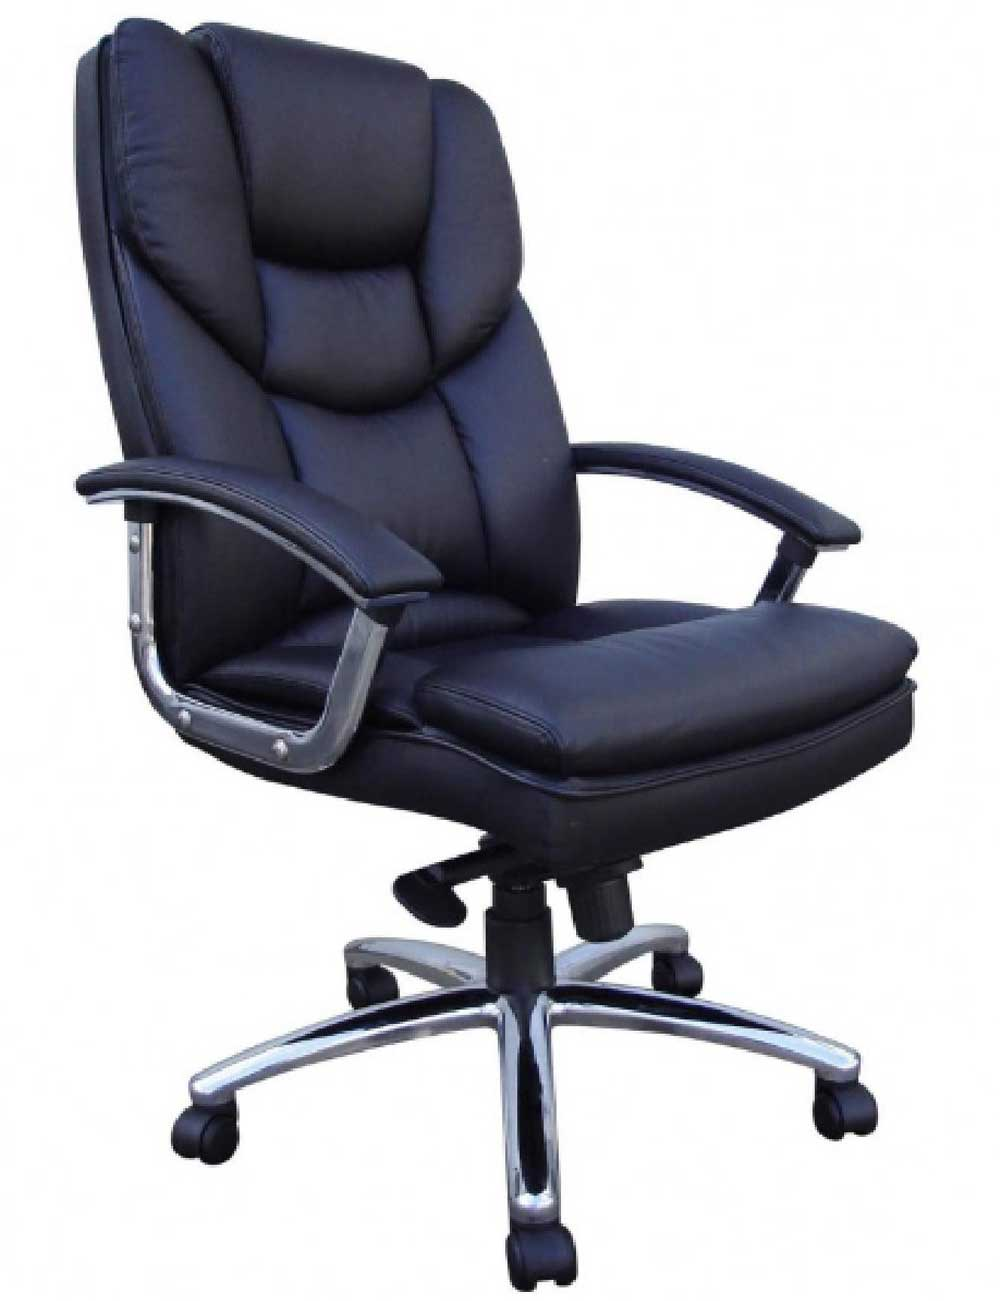 Will Chair Luxury Office Chairs For Executive